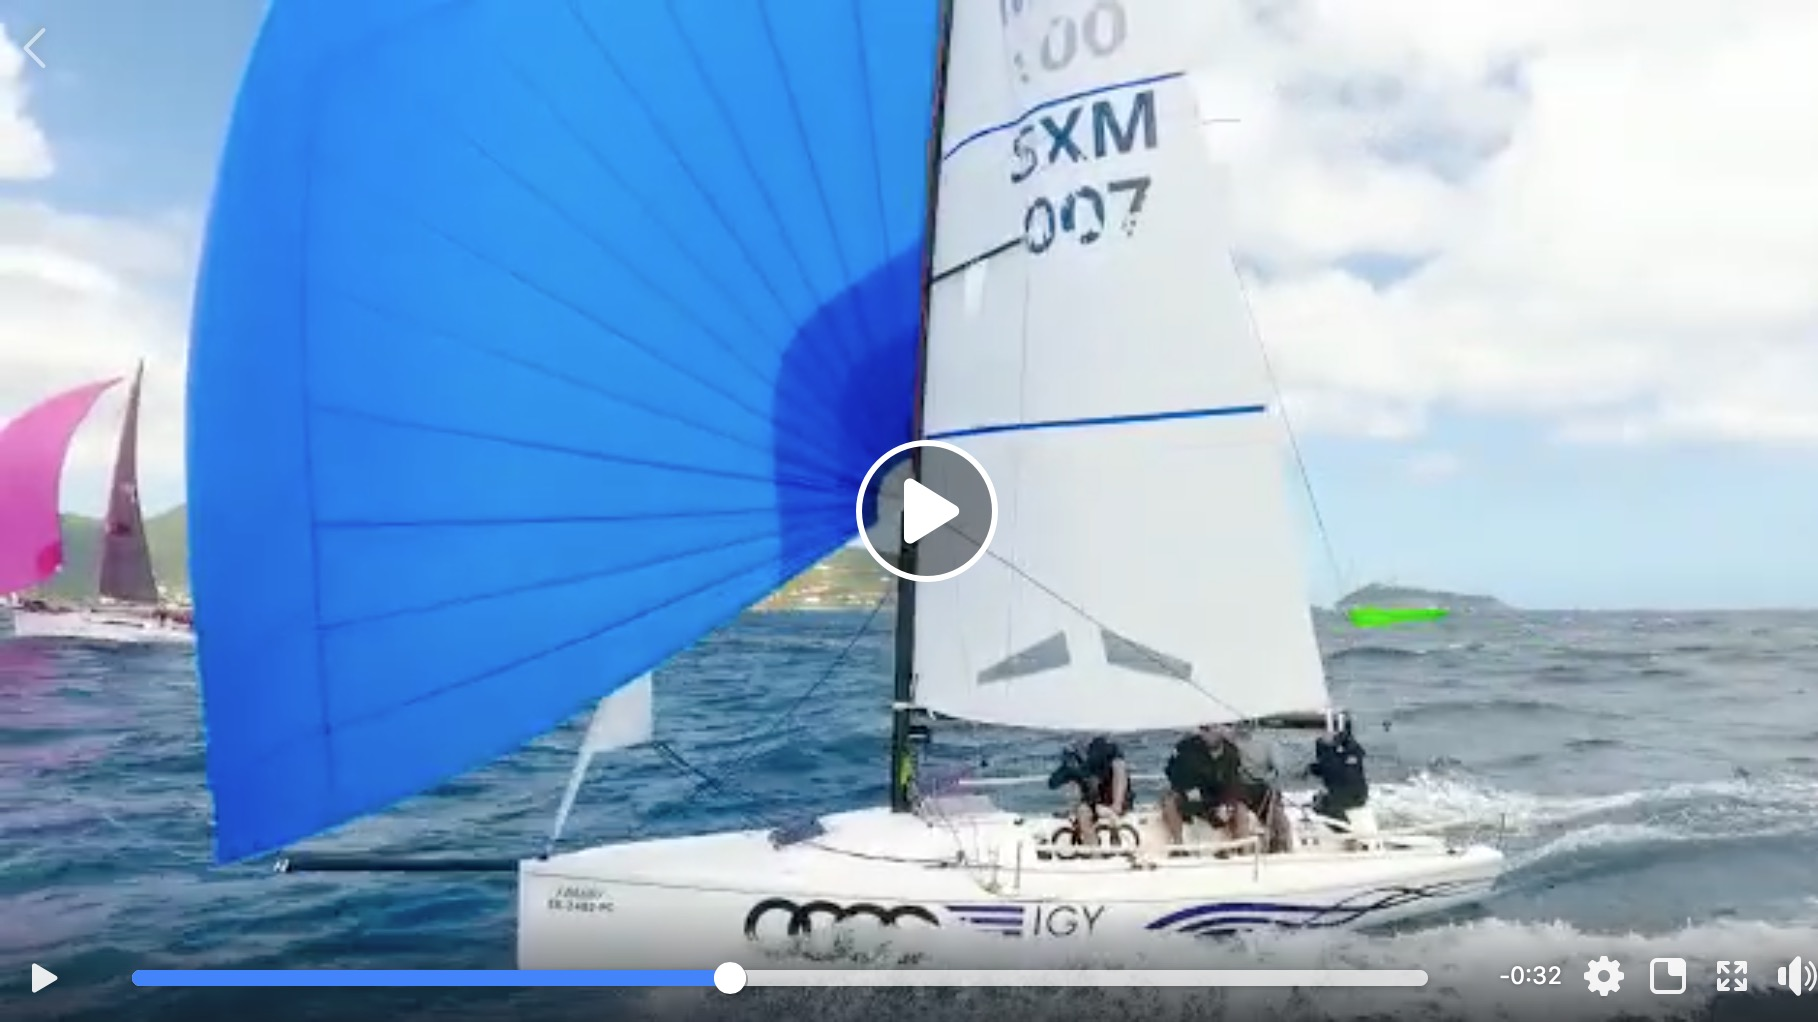 J/70 IGY Marinas video